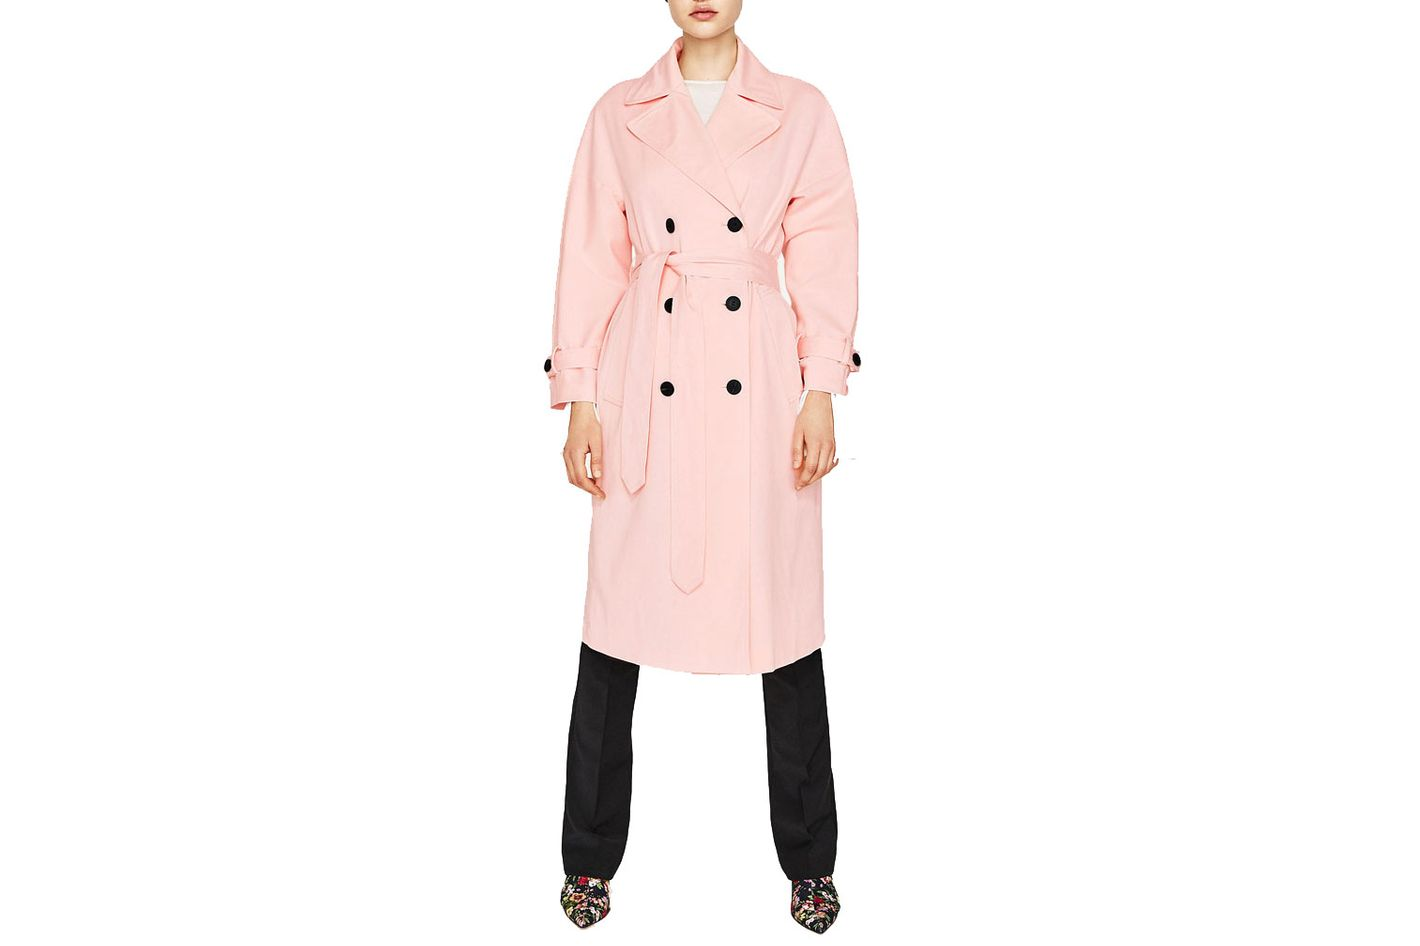 Zara bell-sleeve trench coat